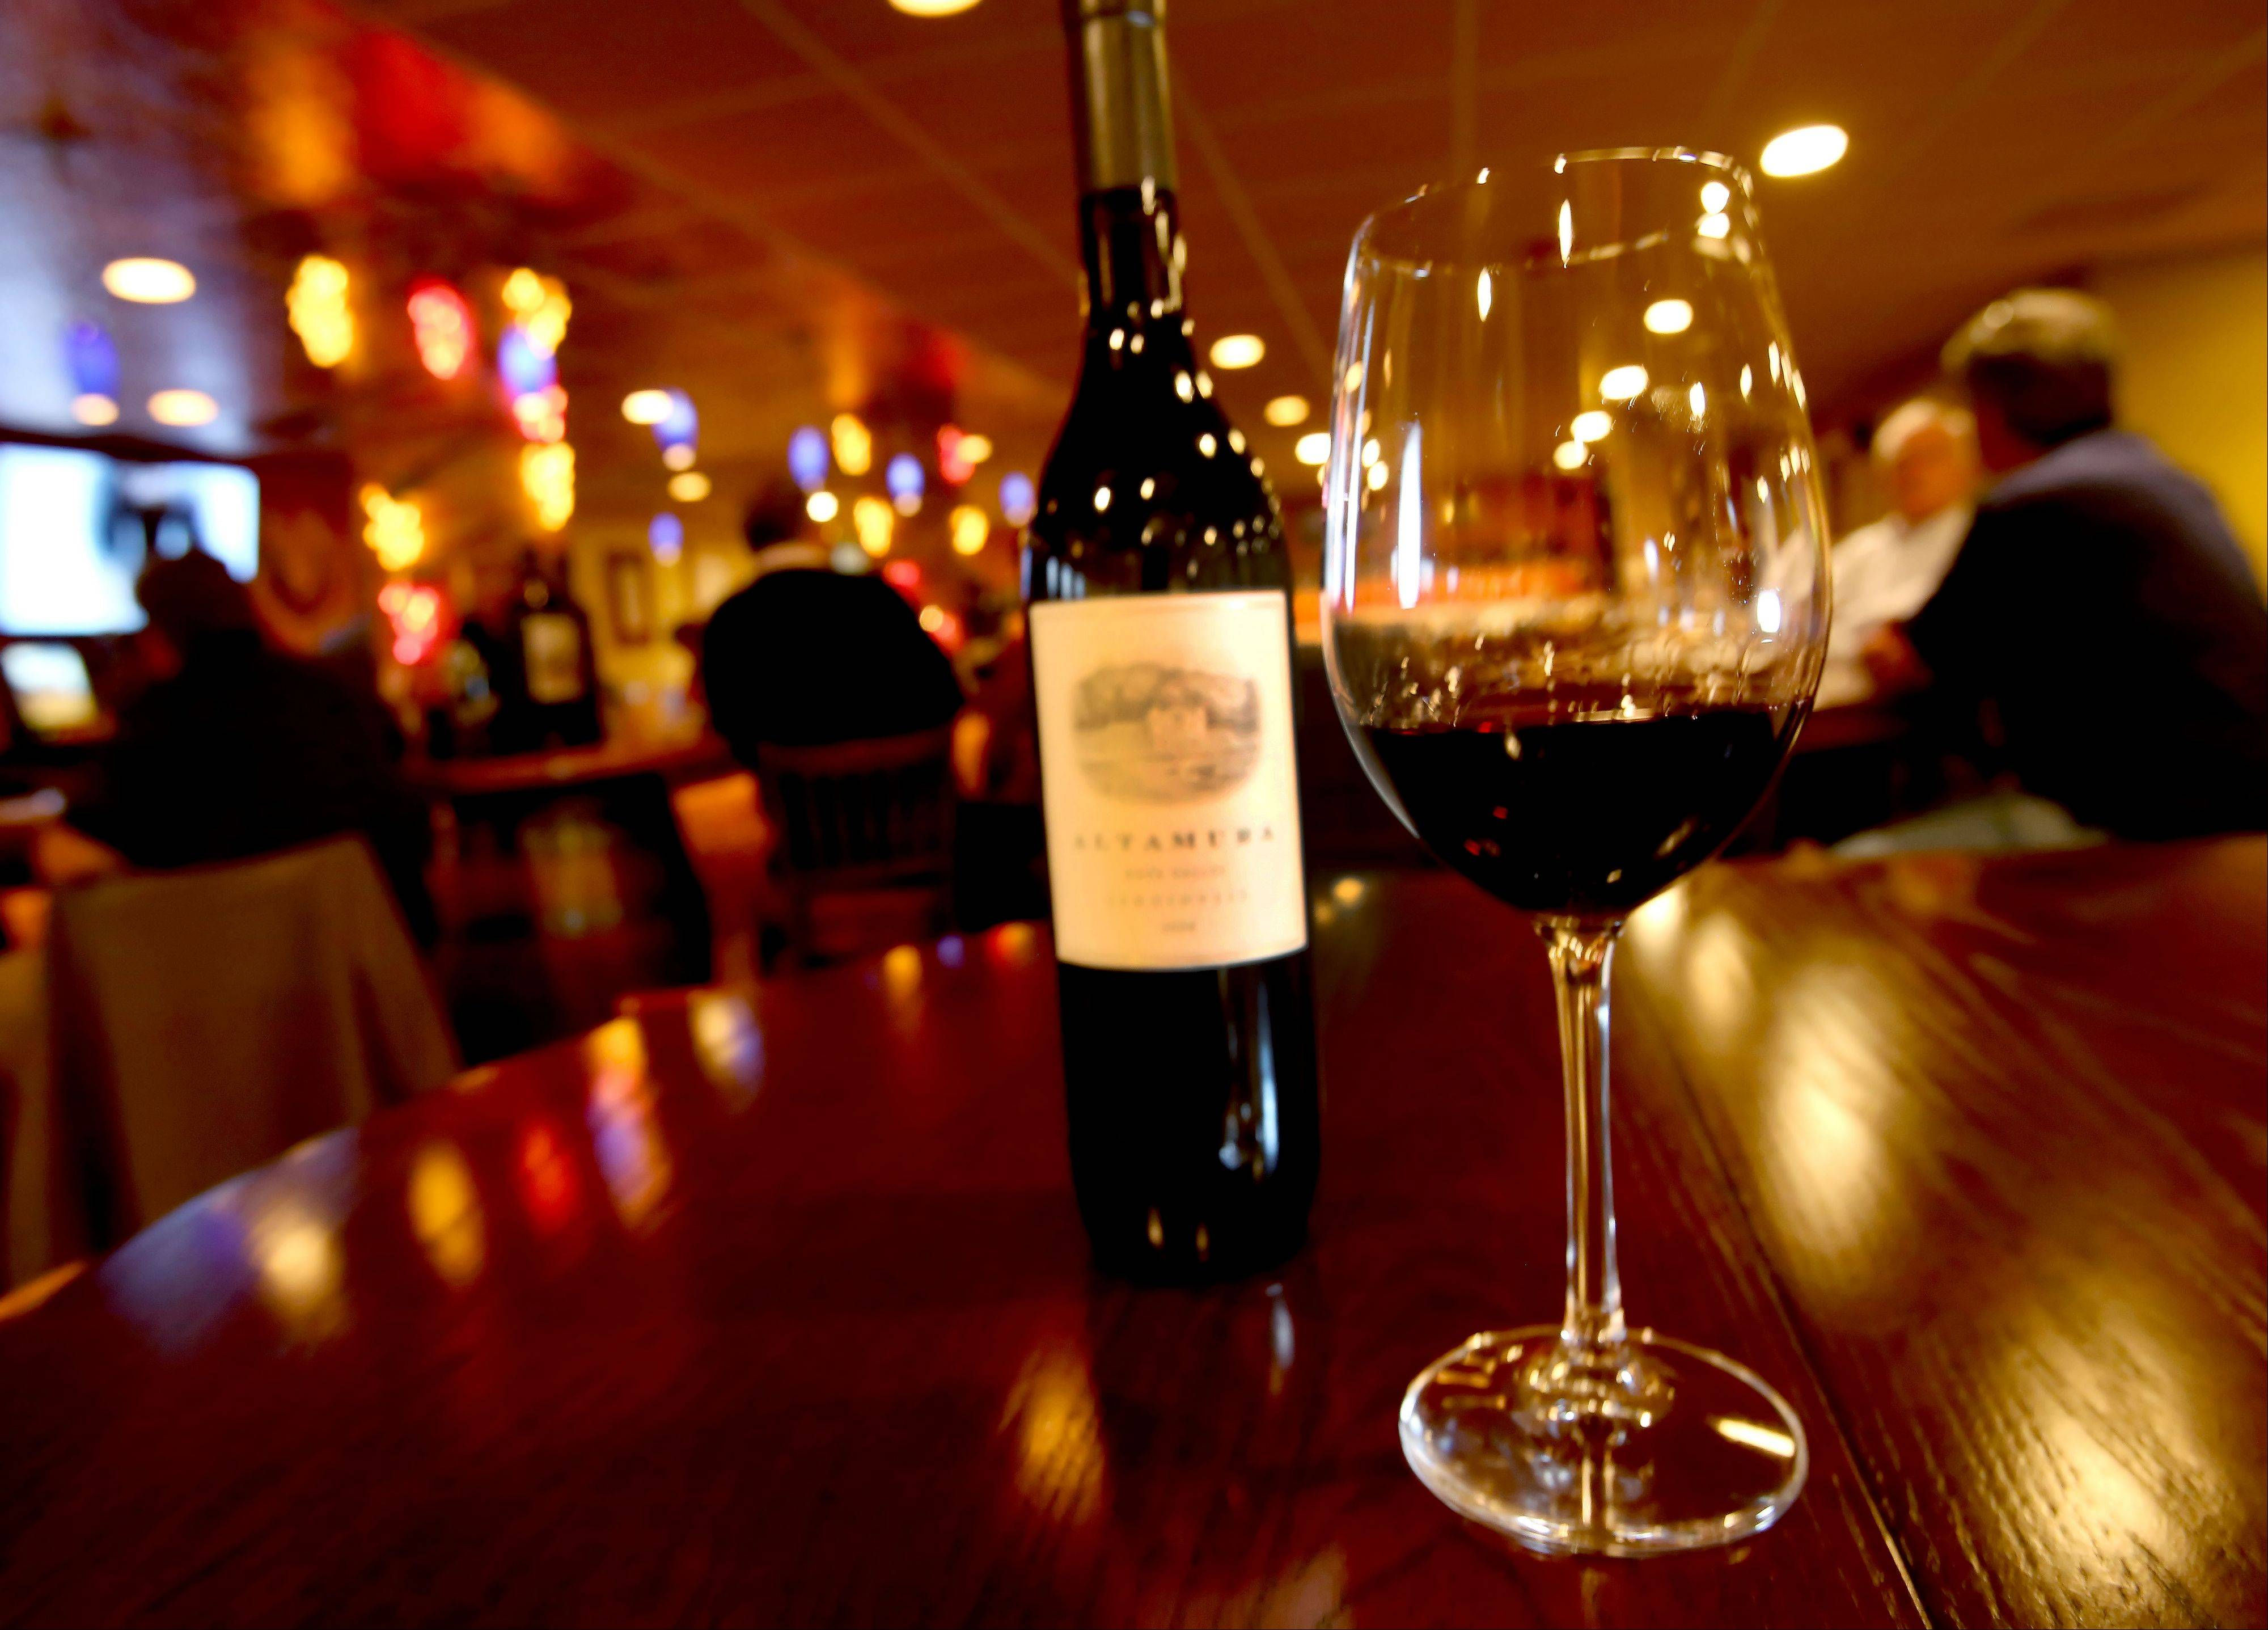 Itasca's Wine With Me offers a number of wines by the glass or bottle.